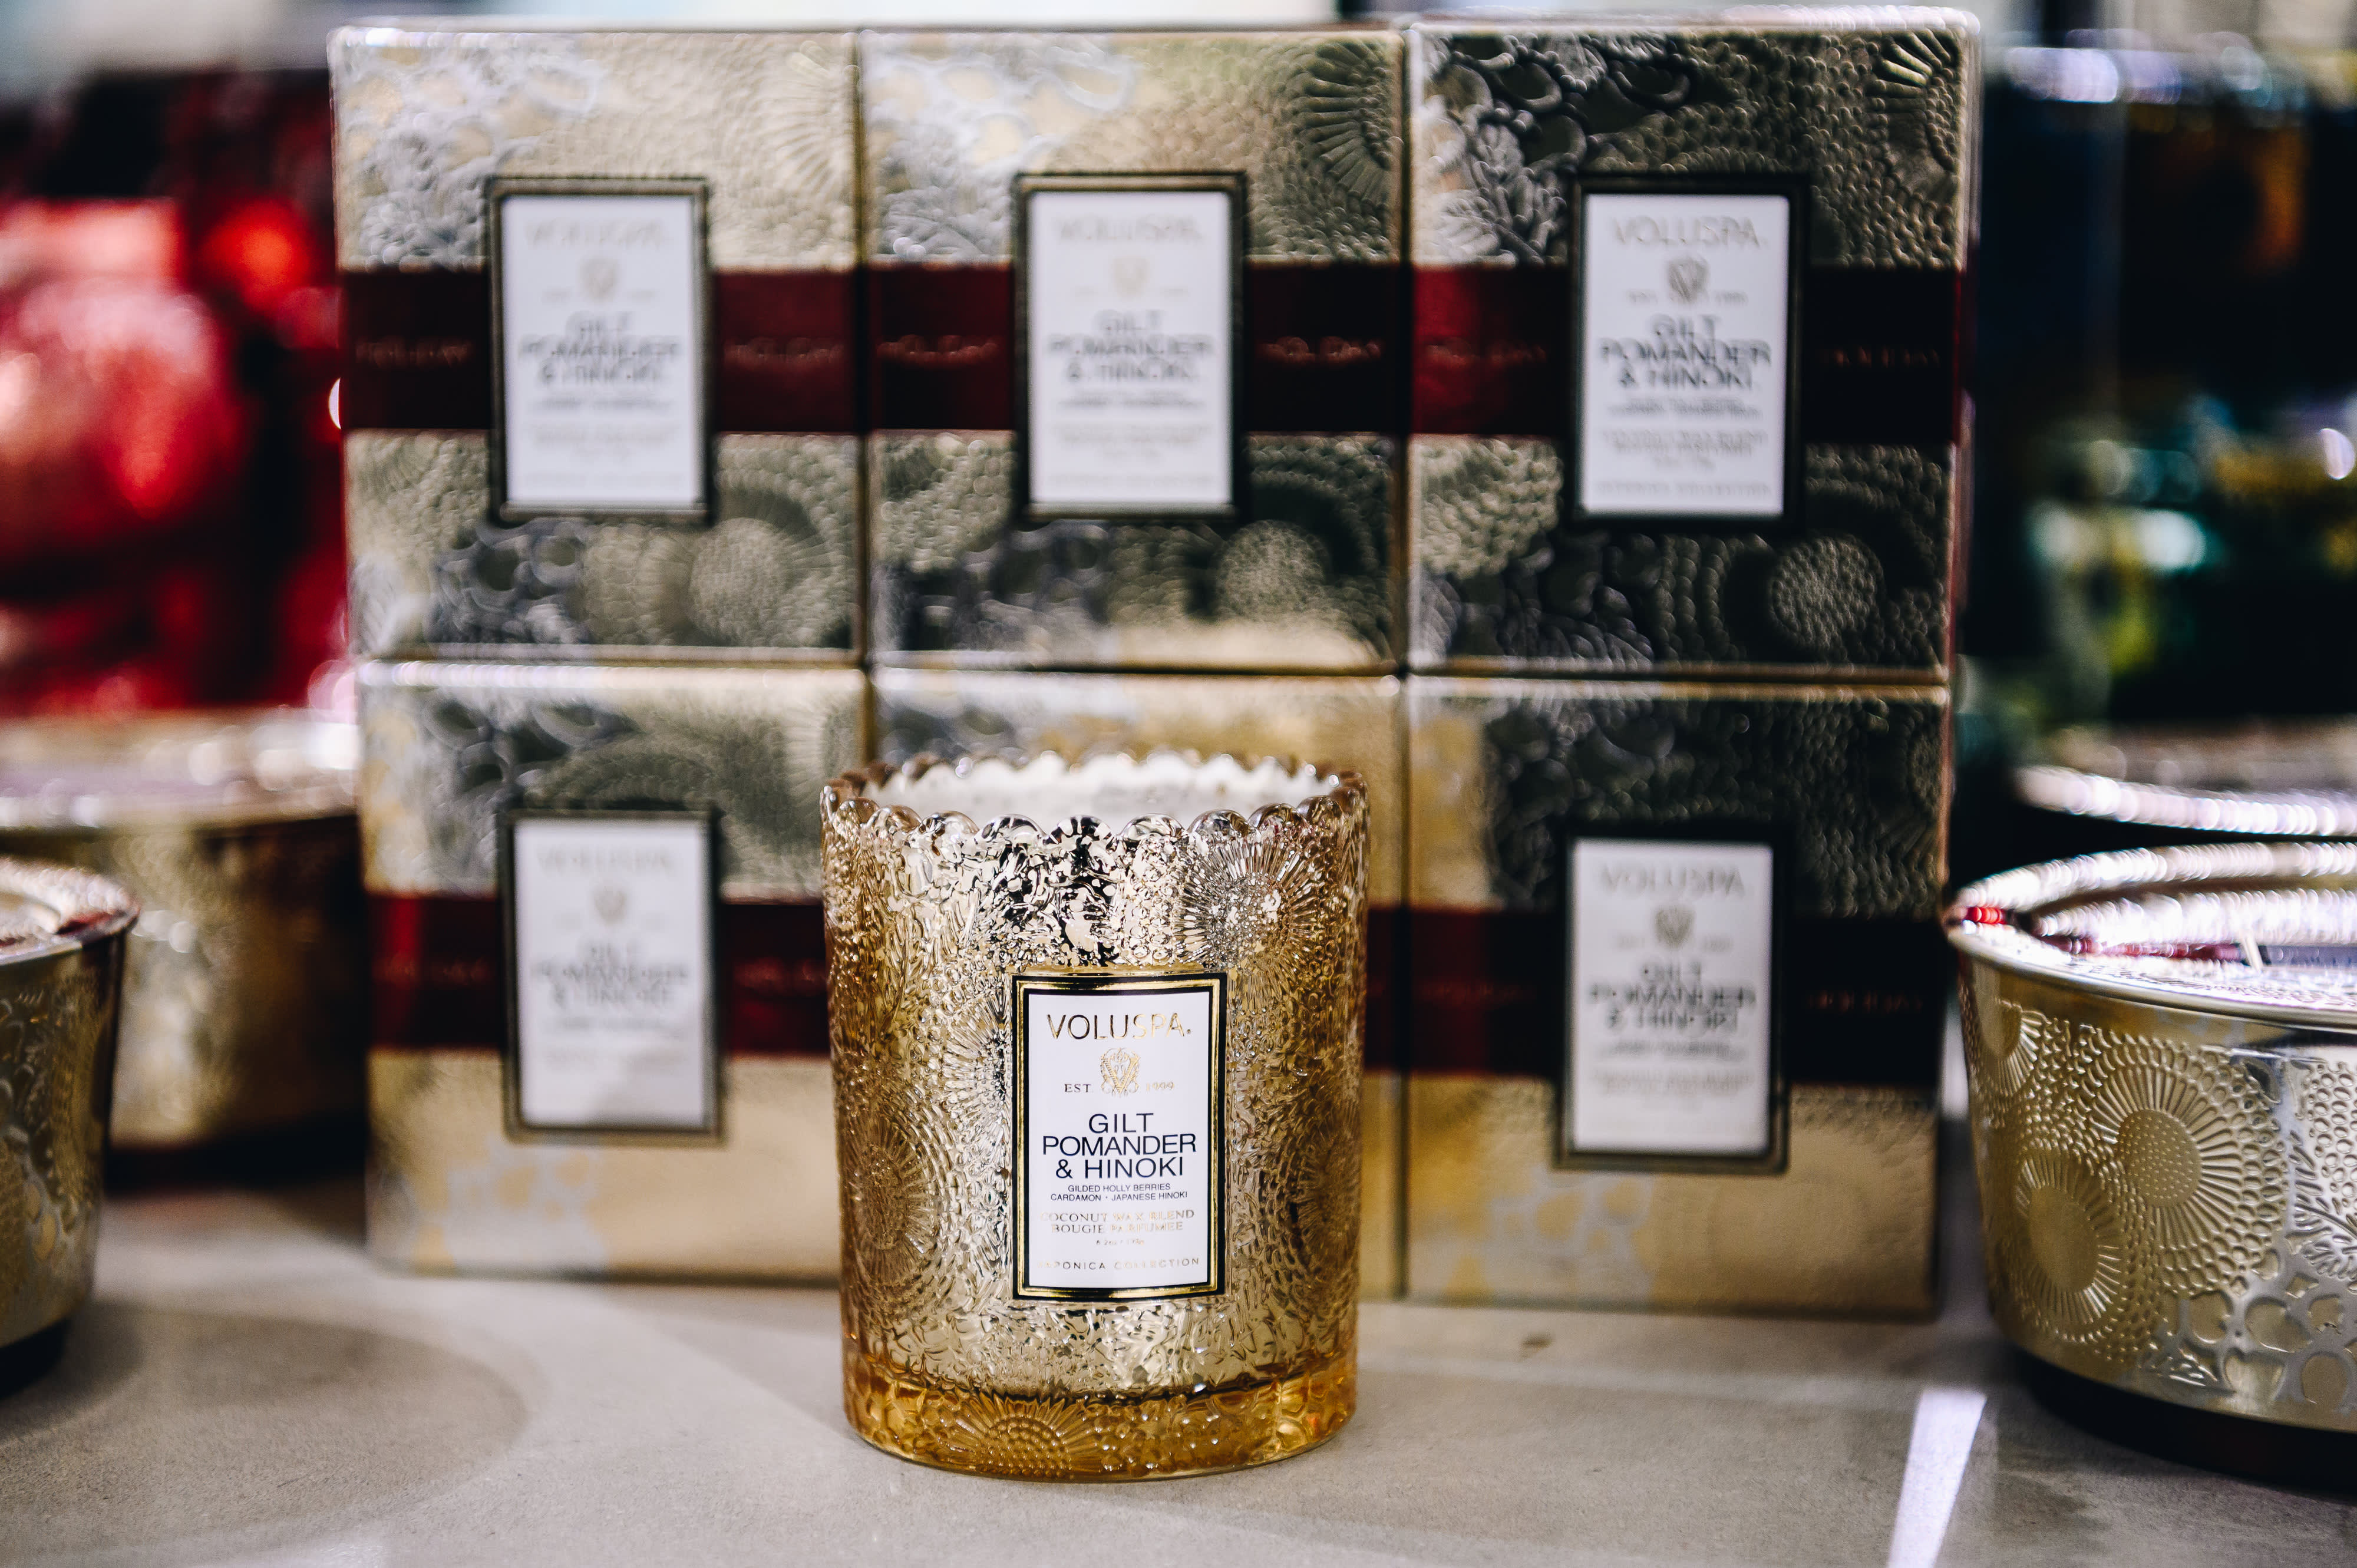 Homebound shoppers are finding comfort in scented candles, home fragrances this holiday season